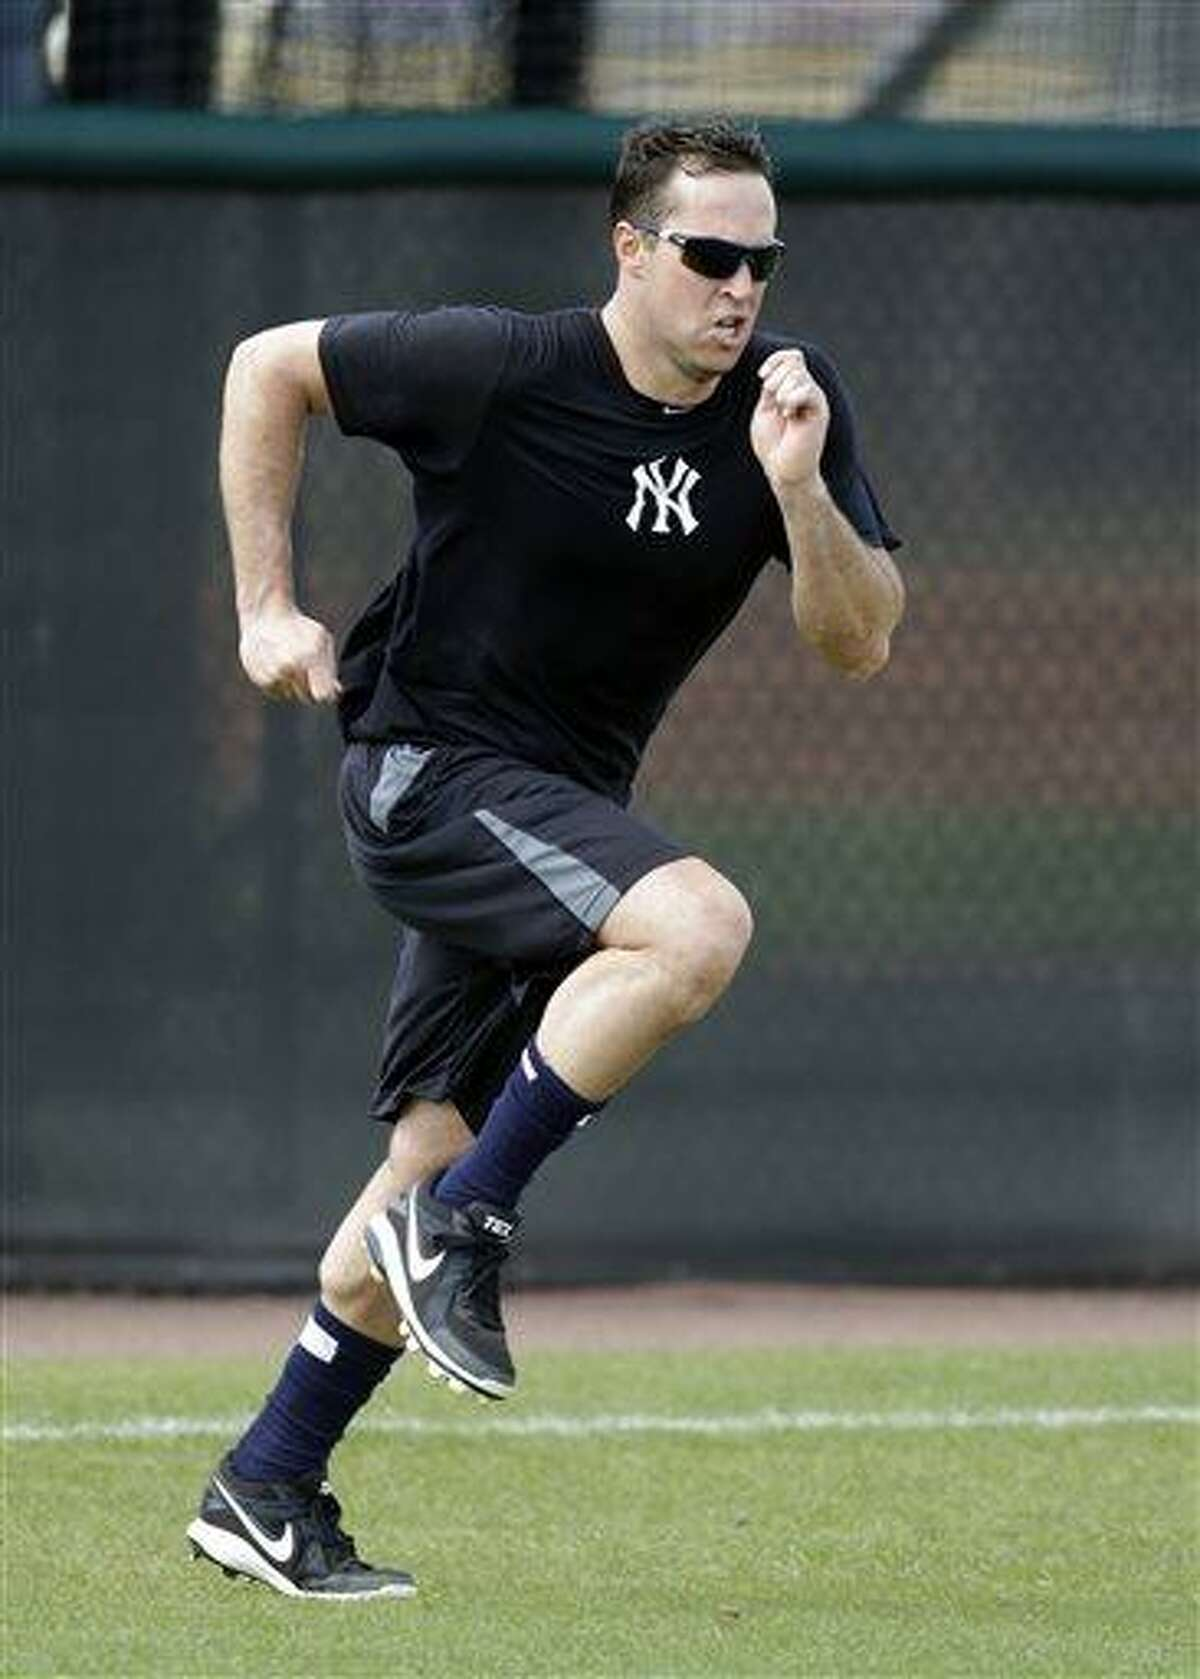 New York Yankees first baseman Mark Teixeira runs sprints during a rehab workout at the Yankees' Minor League complex Monday, May 6, 2013, in Tampa, Fla. Teixeira is making progress towards his return from a wrist injury. (AP Photo/Chris O'Meara)